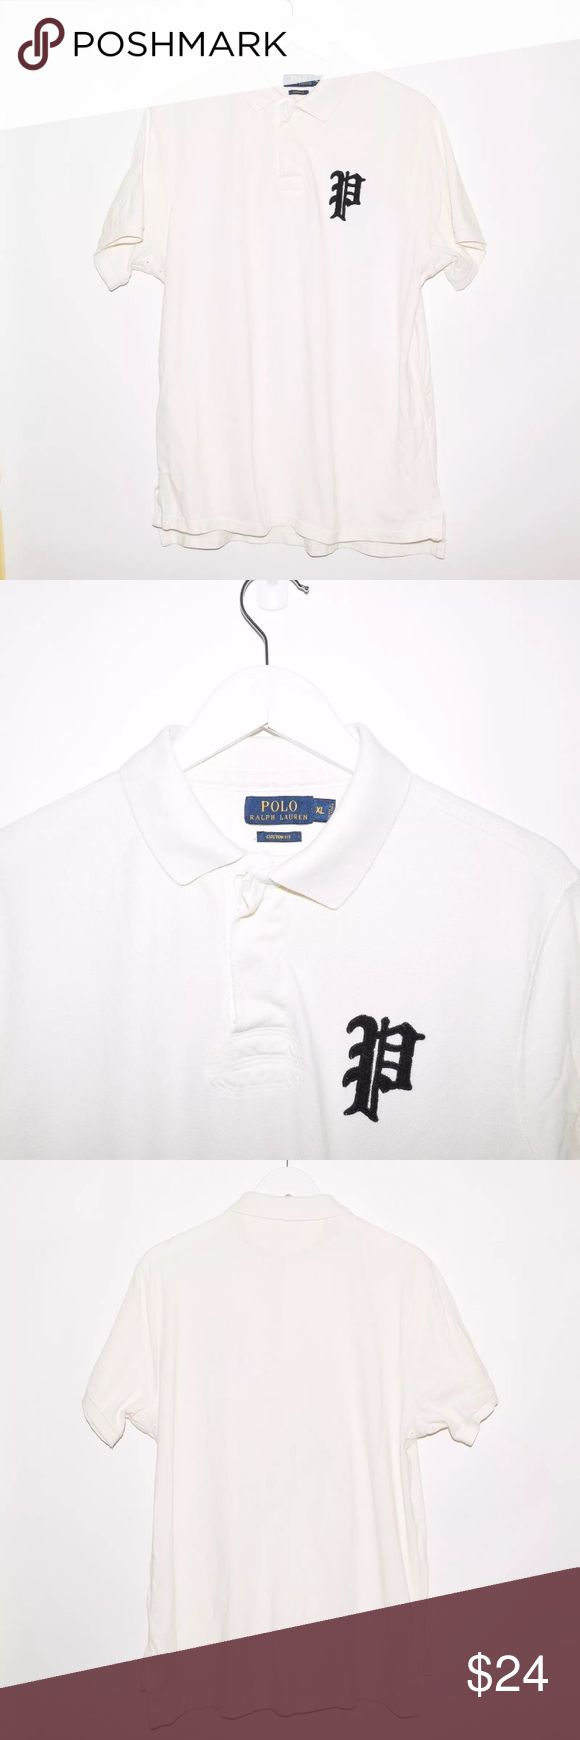 Rare Polo Ralph Lauren Custom Fit Big P Polo Shirt Brand: Polo Ralph Lauren Item name: Custom Fit Big PCotton Polo Shirt   Color: White Condition: This is a pre-owned item. This item is in excellent used condition with no stains, rips, holes, etc. Comes from a smoke free home. Size: XL Measurements: Pit to Pit - 23 inches Shoulder to base - Front: 27 inches Back: 29 inches Polo by Ralph Lauren Shirts Polos